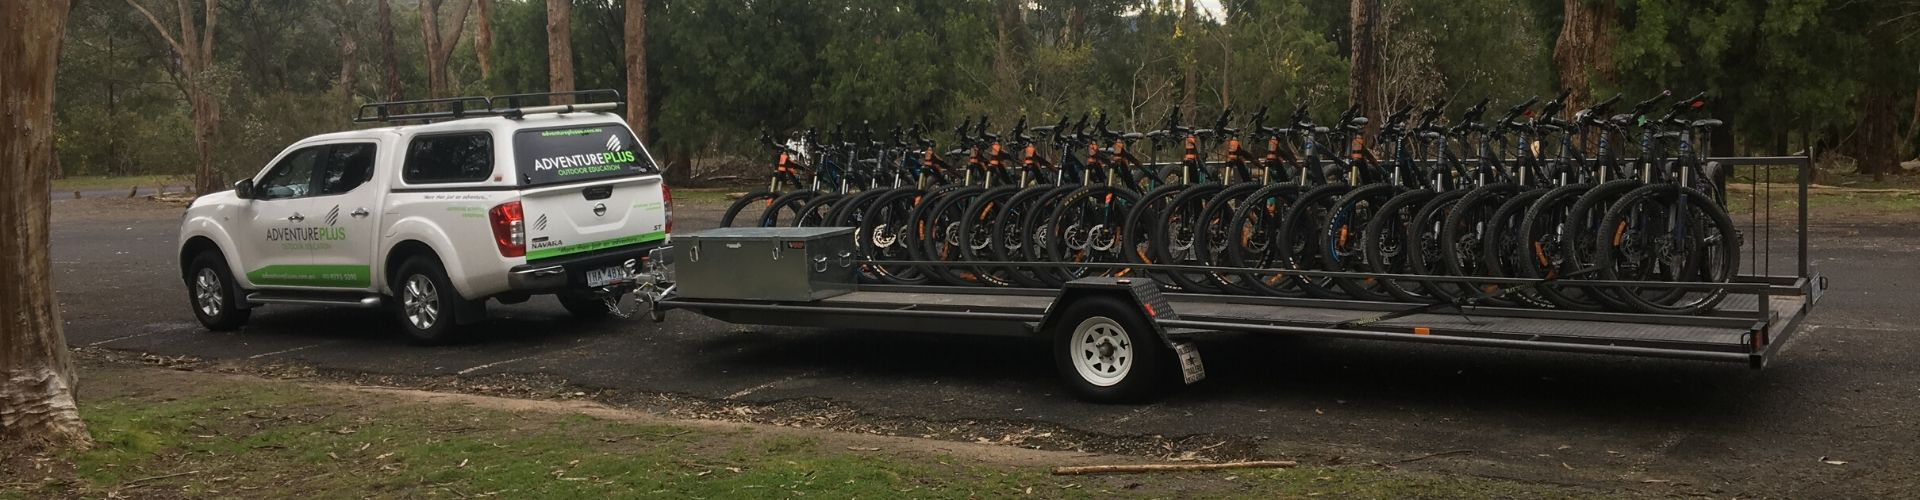 Adventure Plus vehicle with trailer of mountain bikes